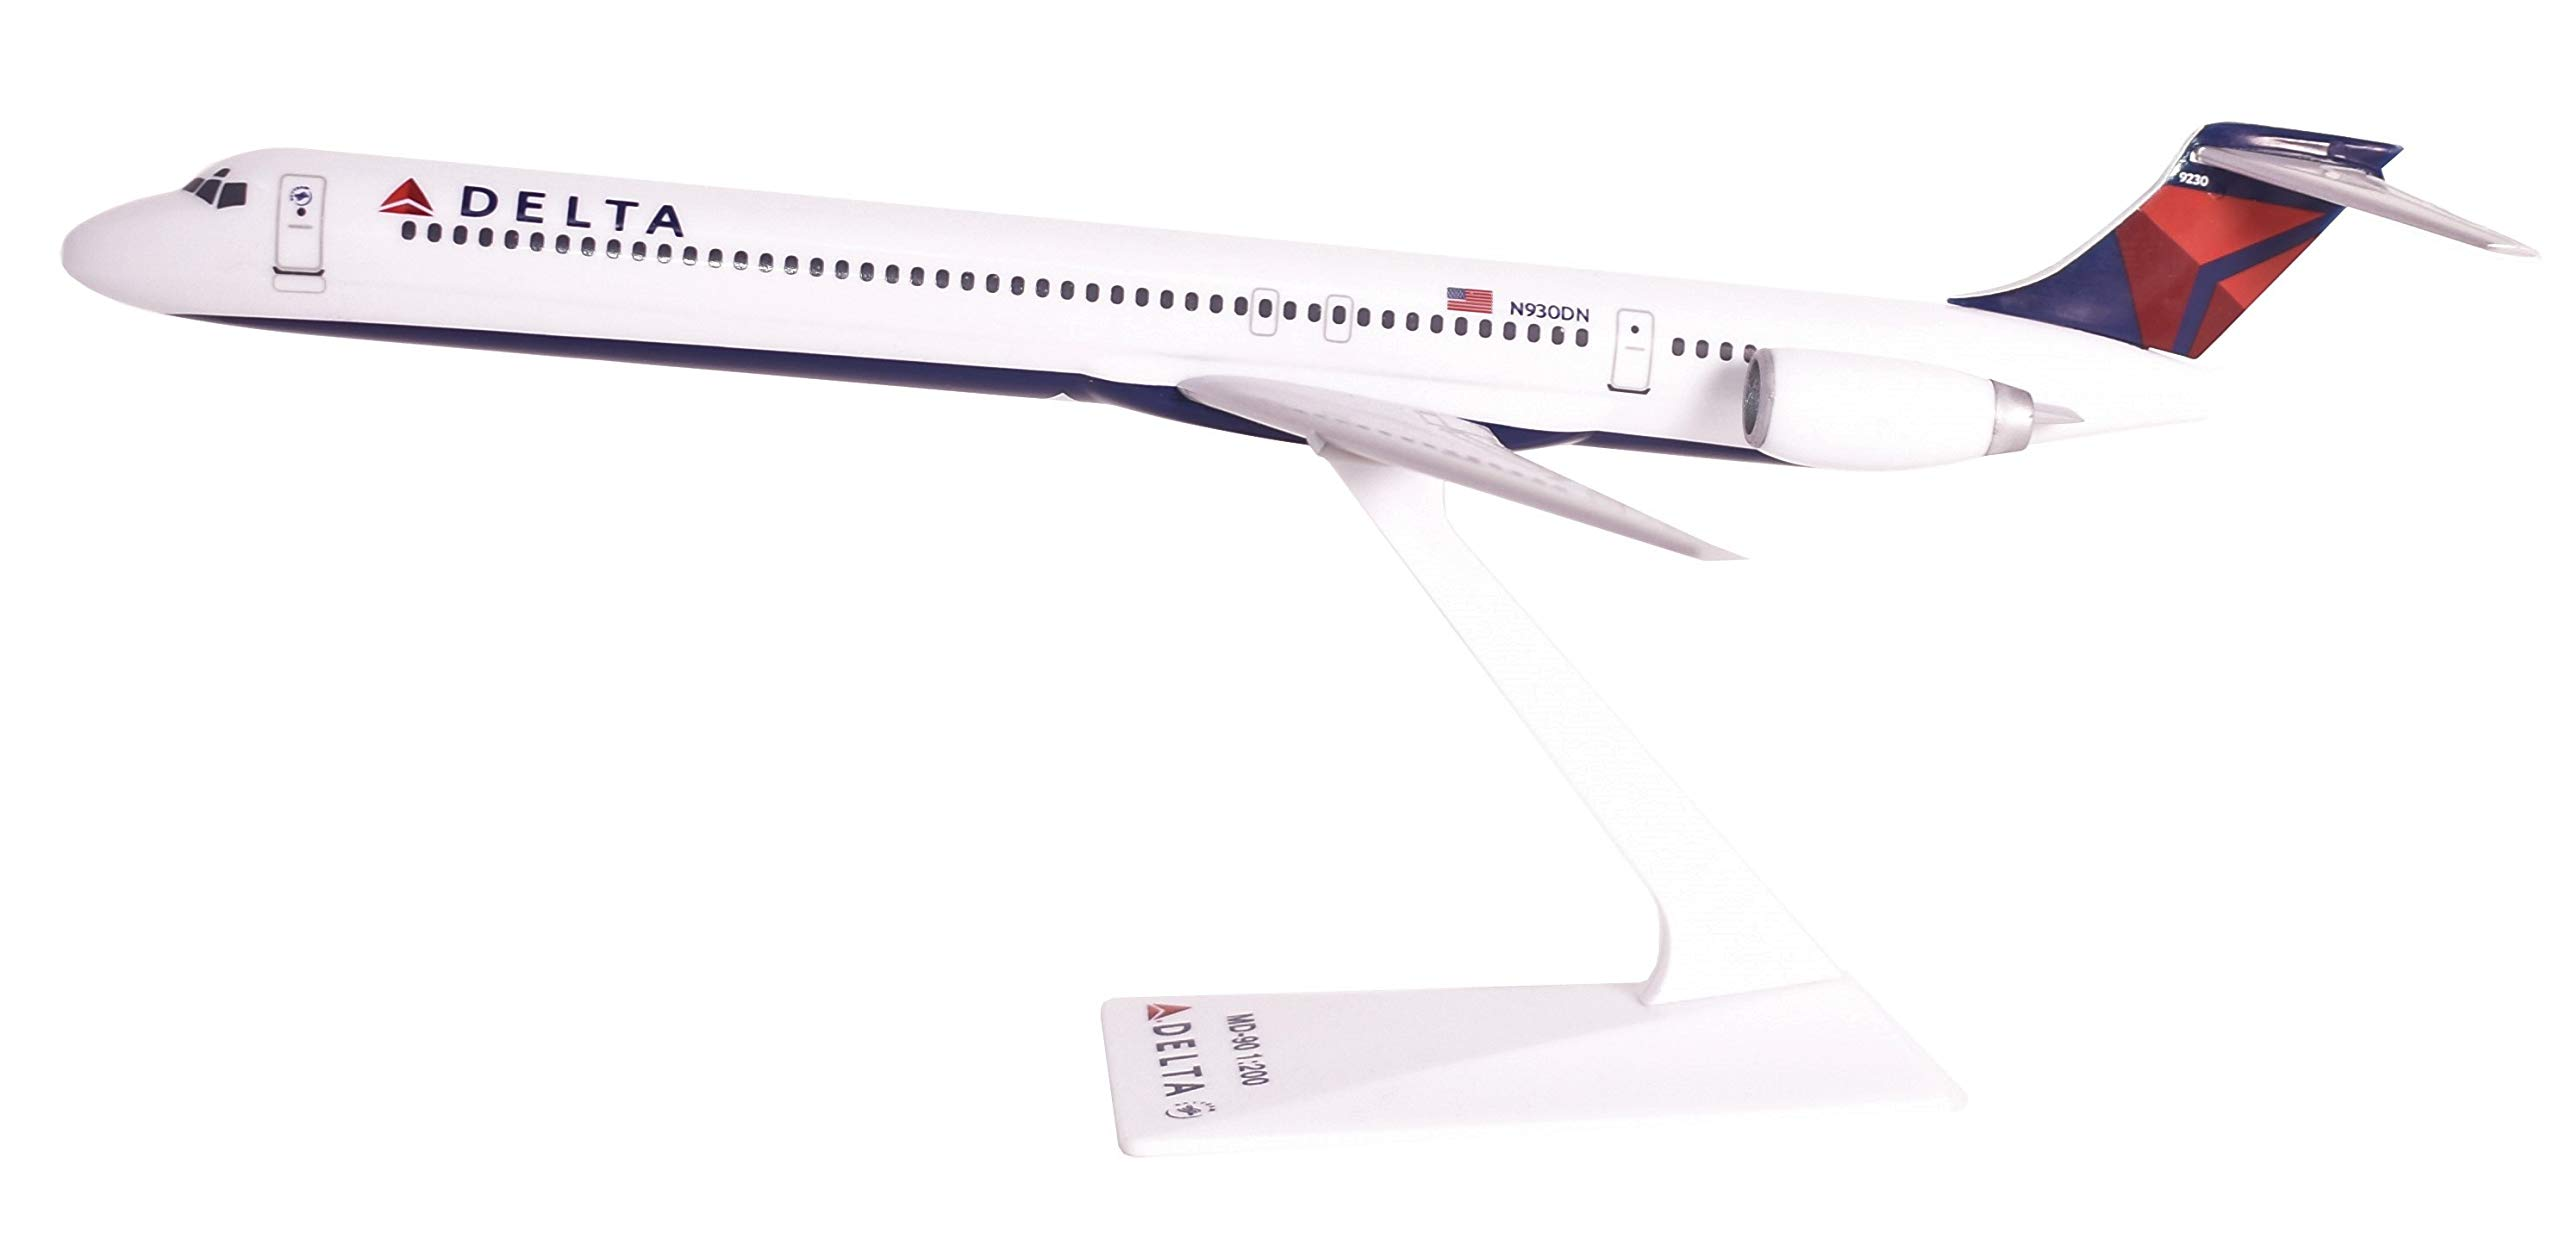 Delta (MD-90) Airplane Miniature Model Plastic Snap Fit 1:200 Part#AMD-09000H-008